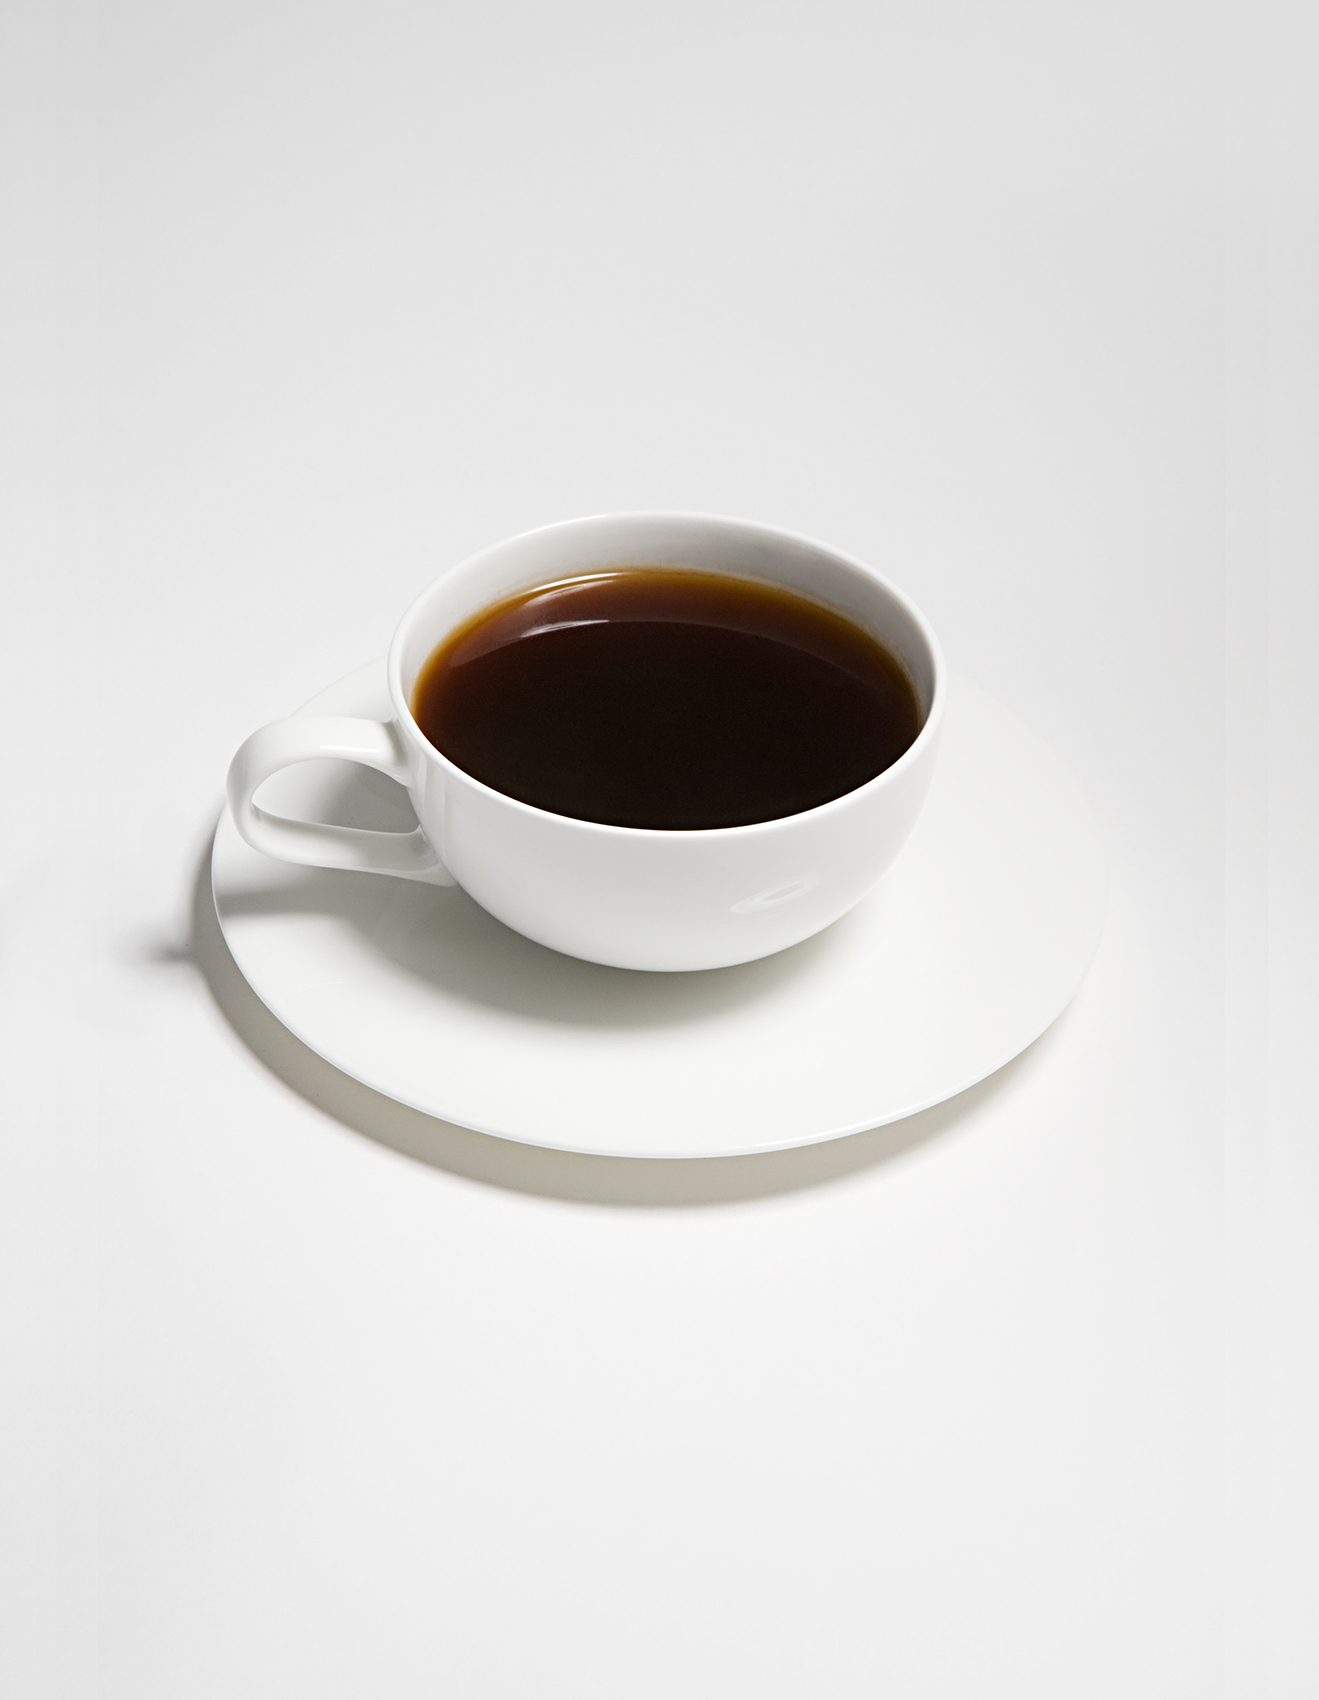 cup-coffee-saucer